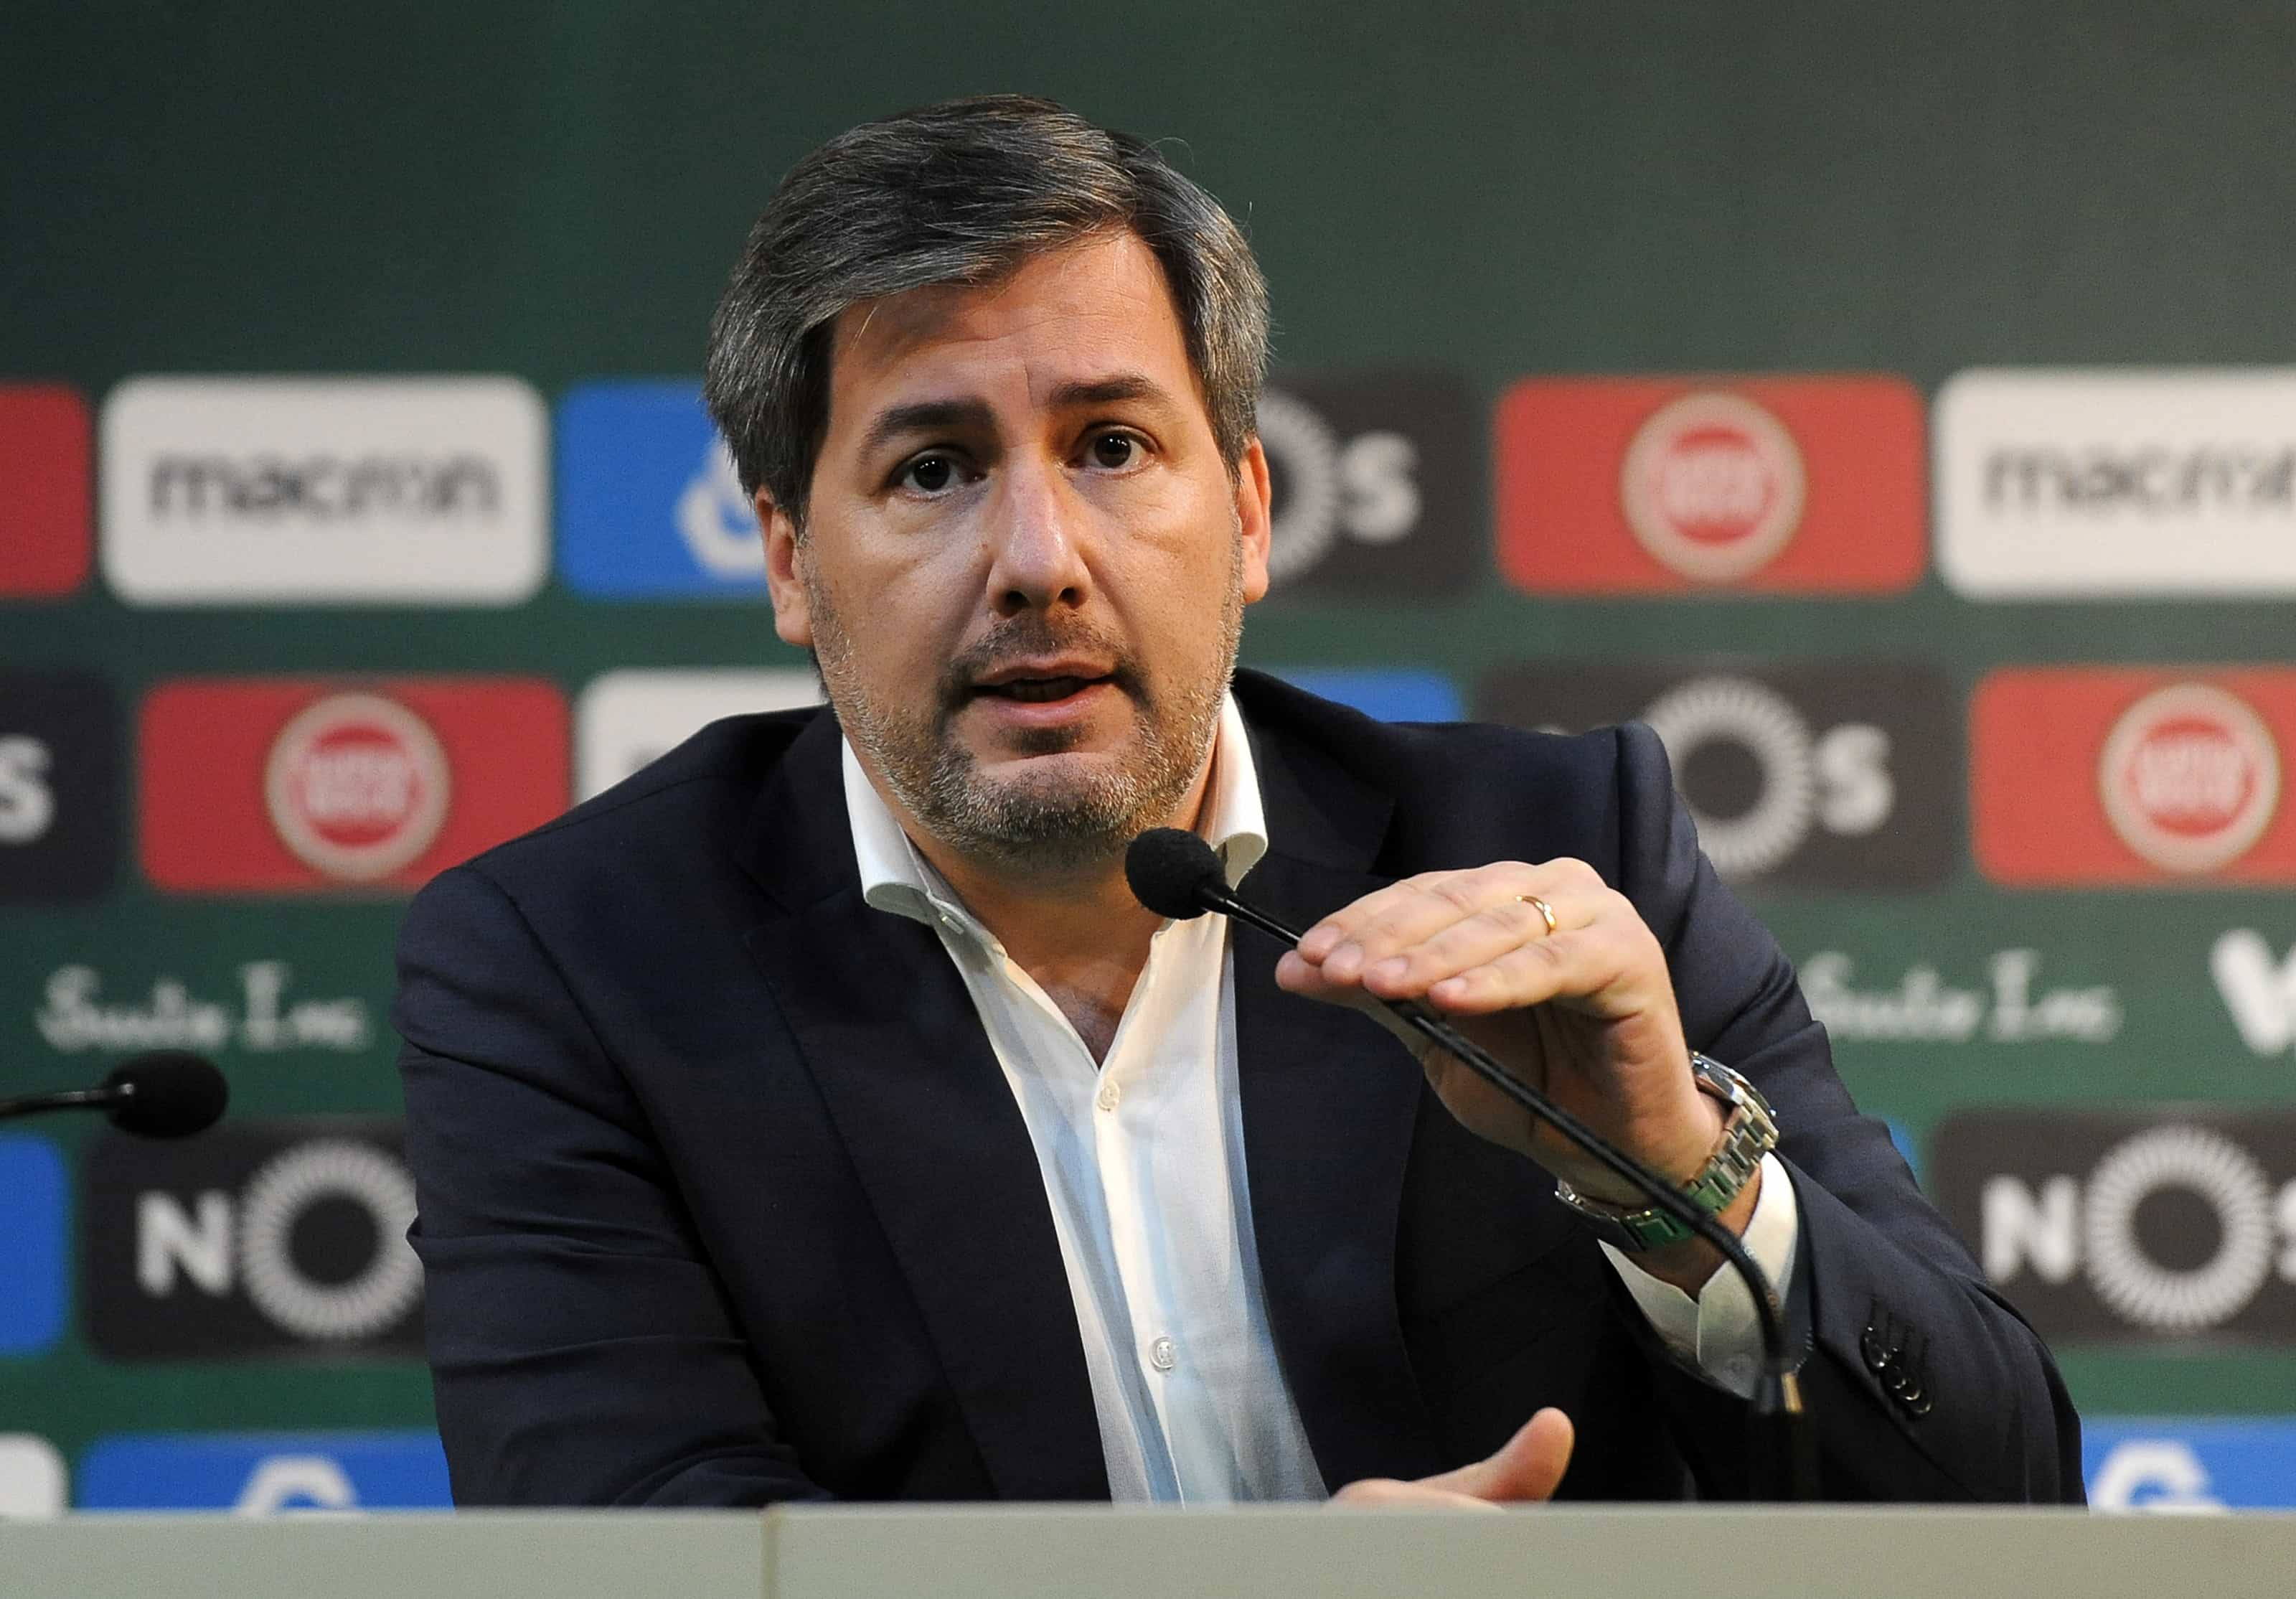 Bruno de Carvalho expulso de sócio do Sporting